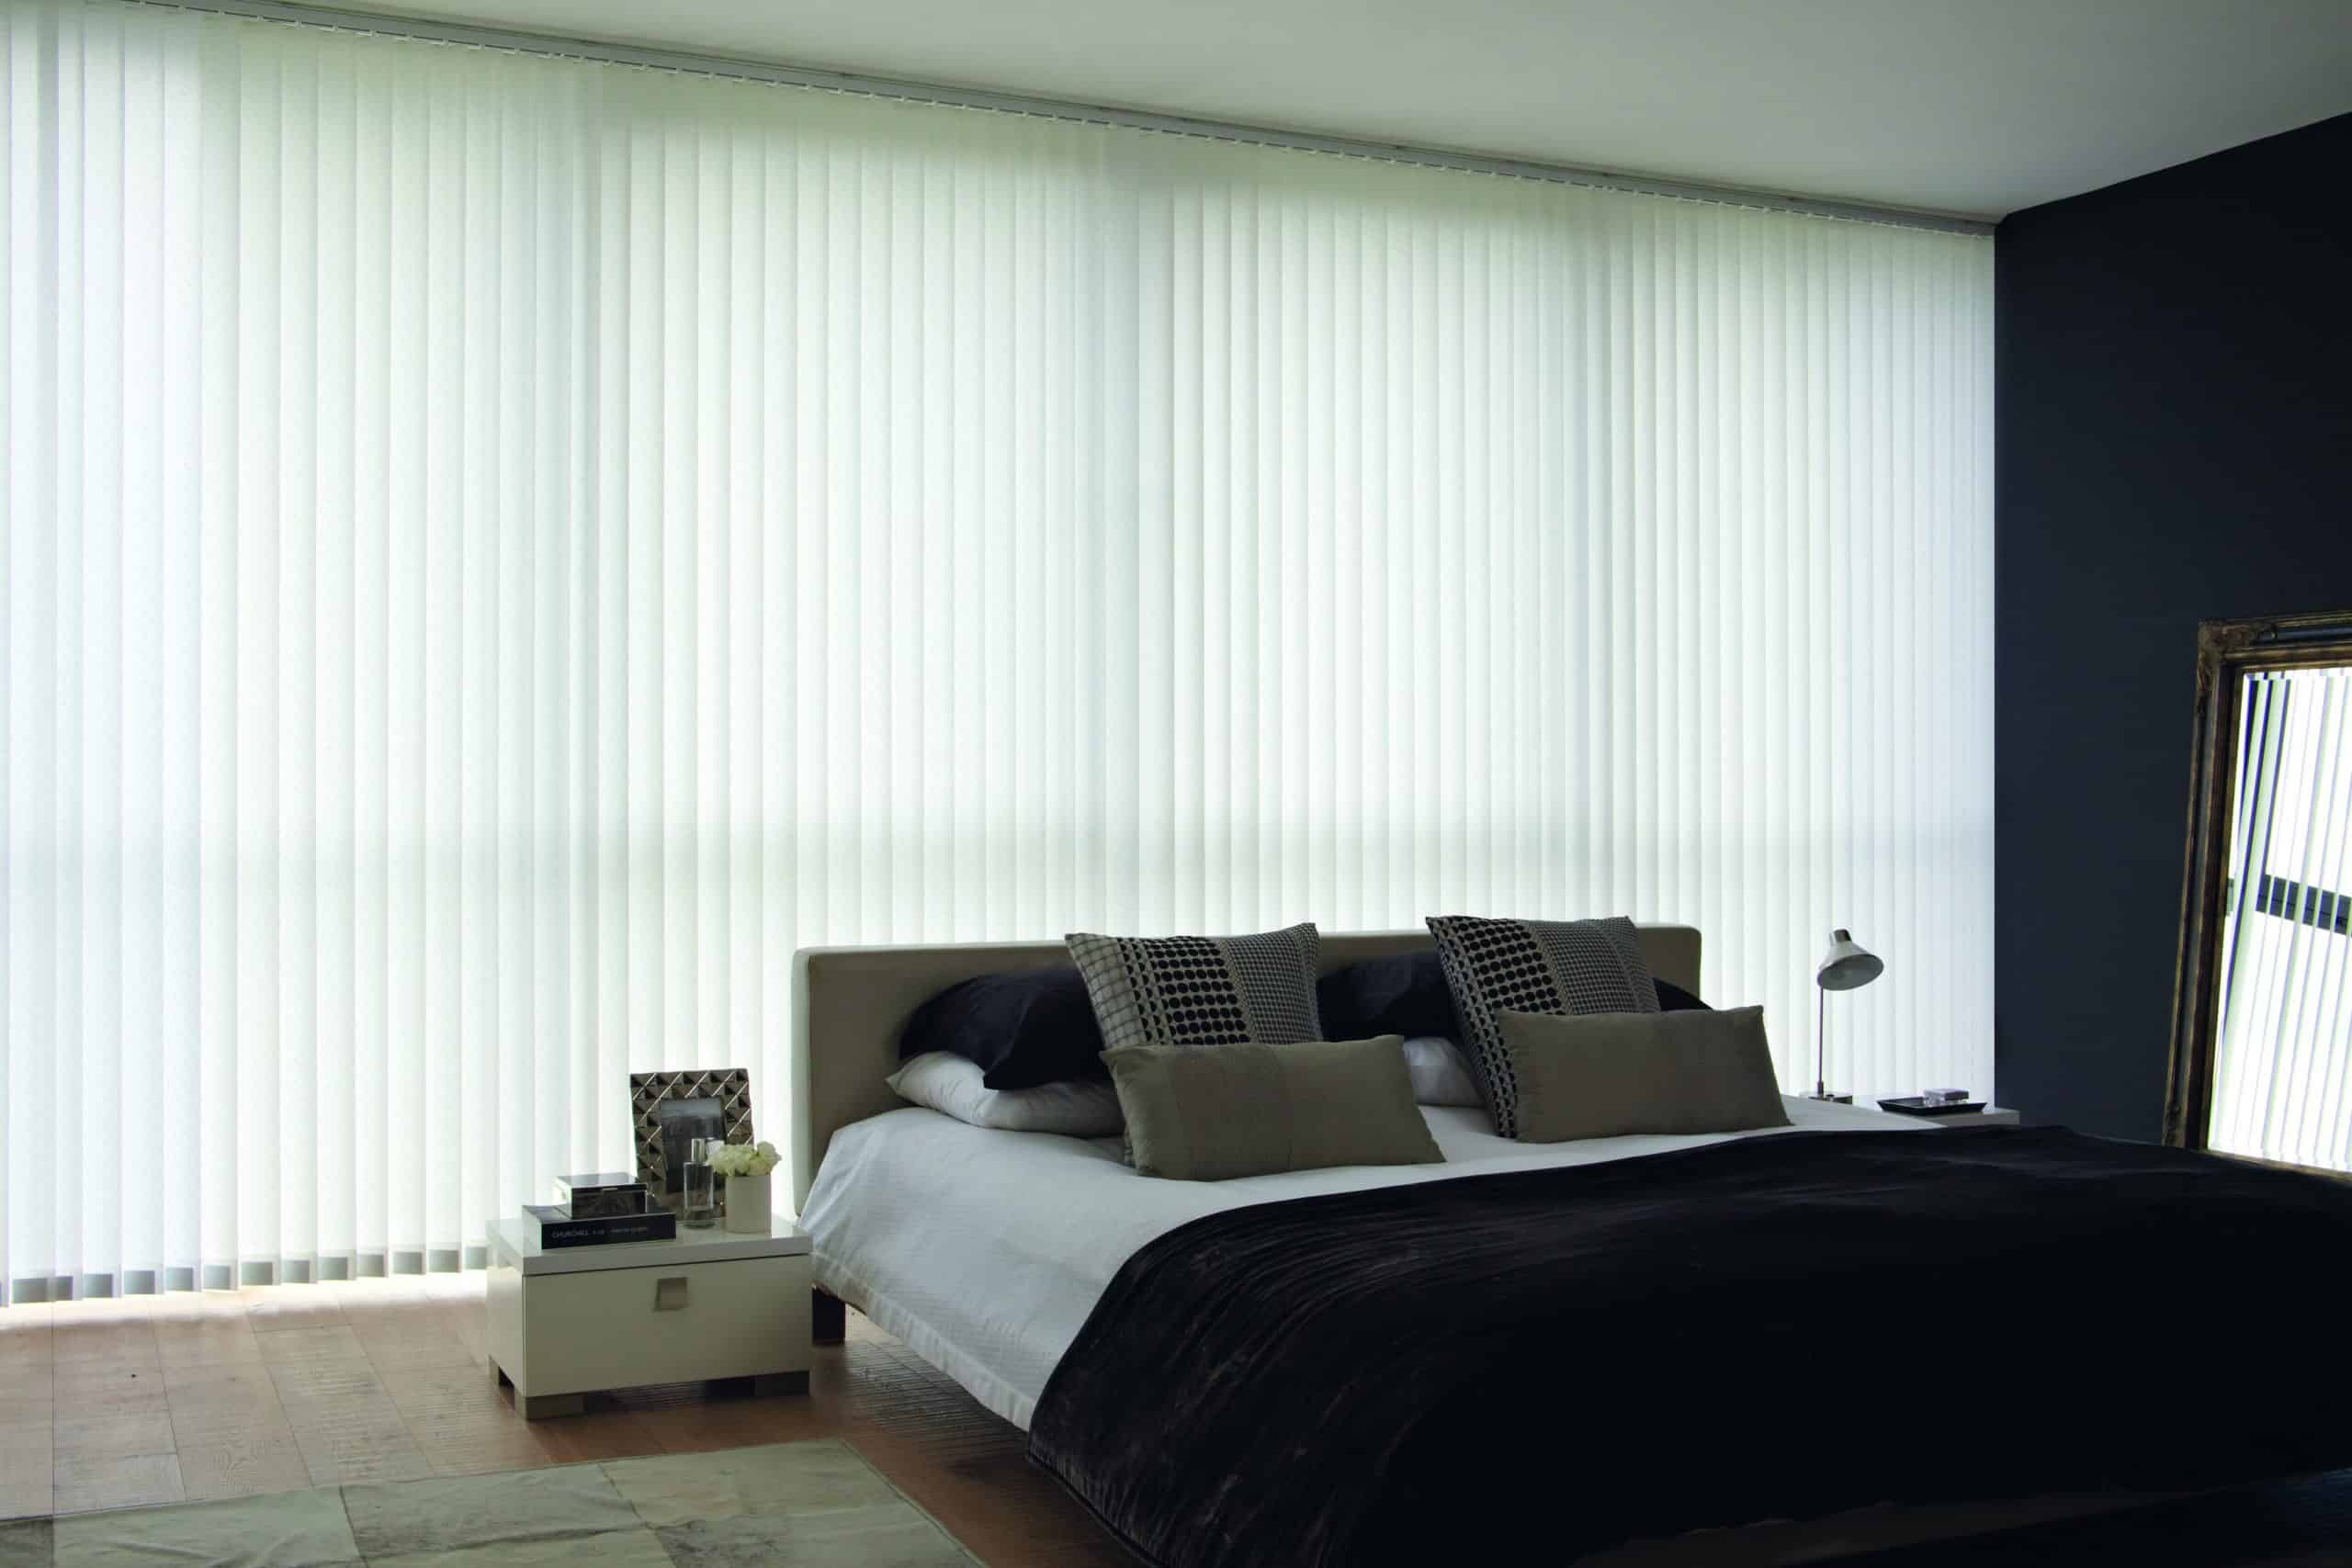 Off White Vertical Blind Replacement